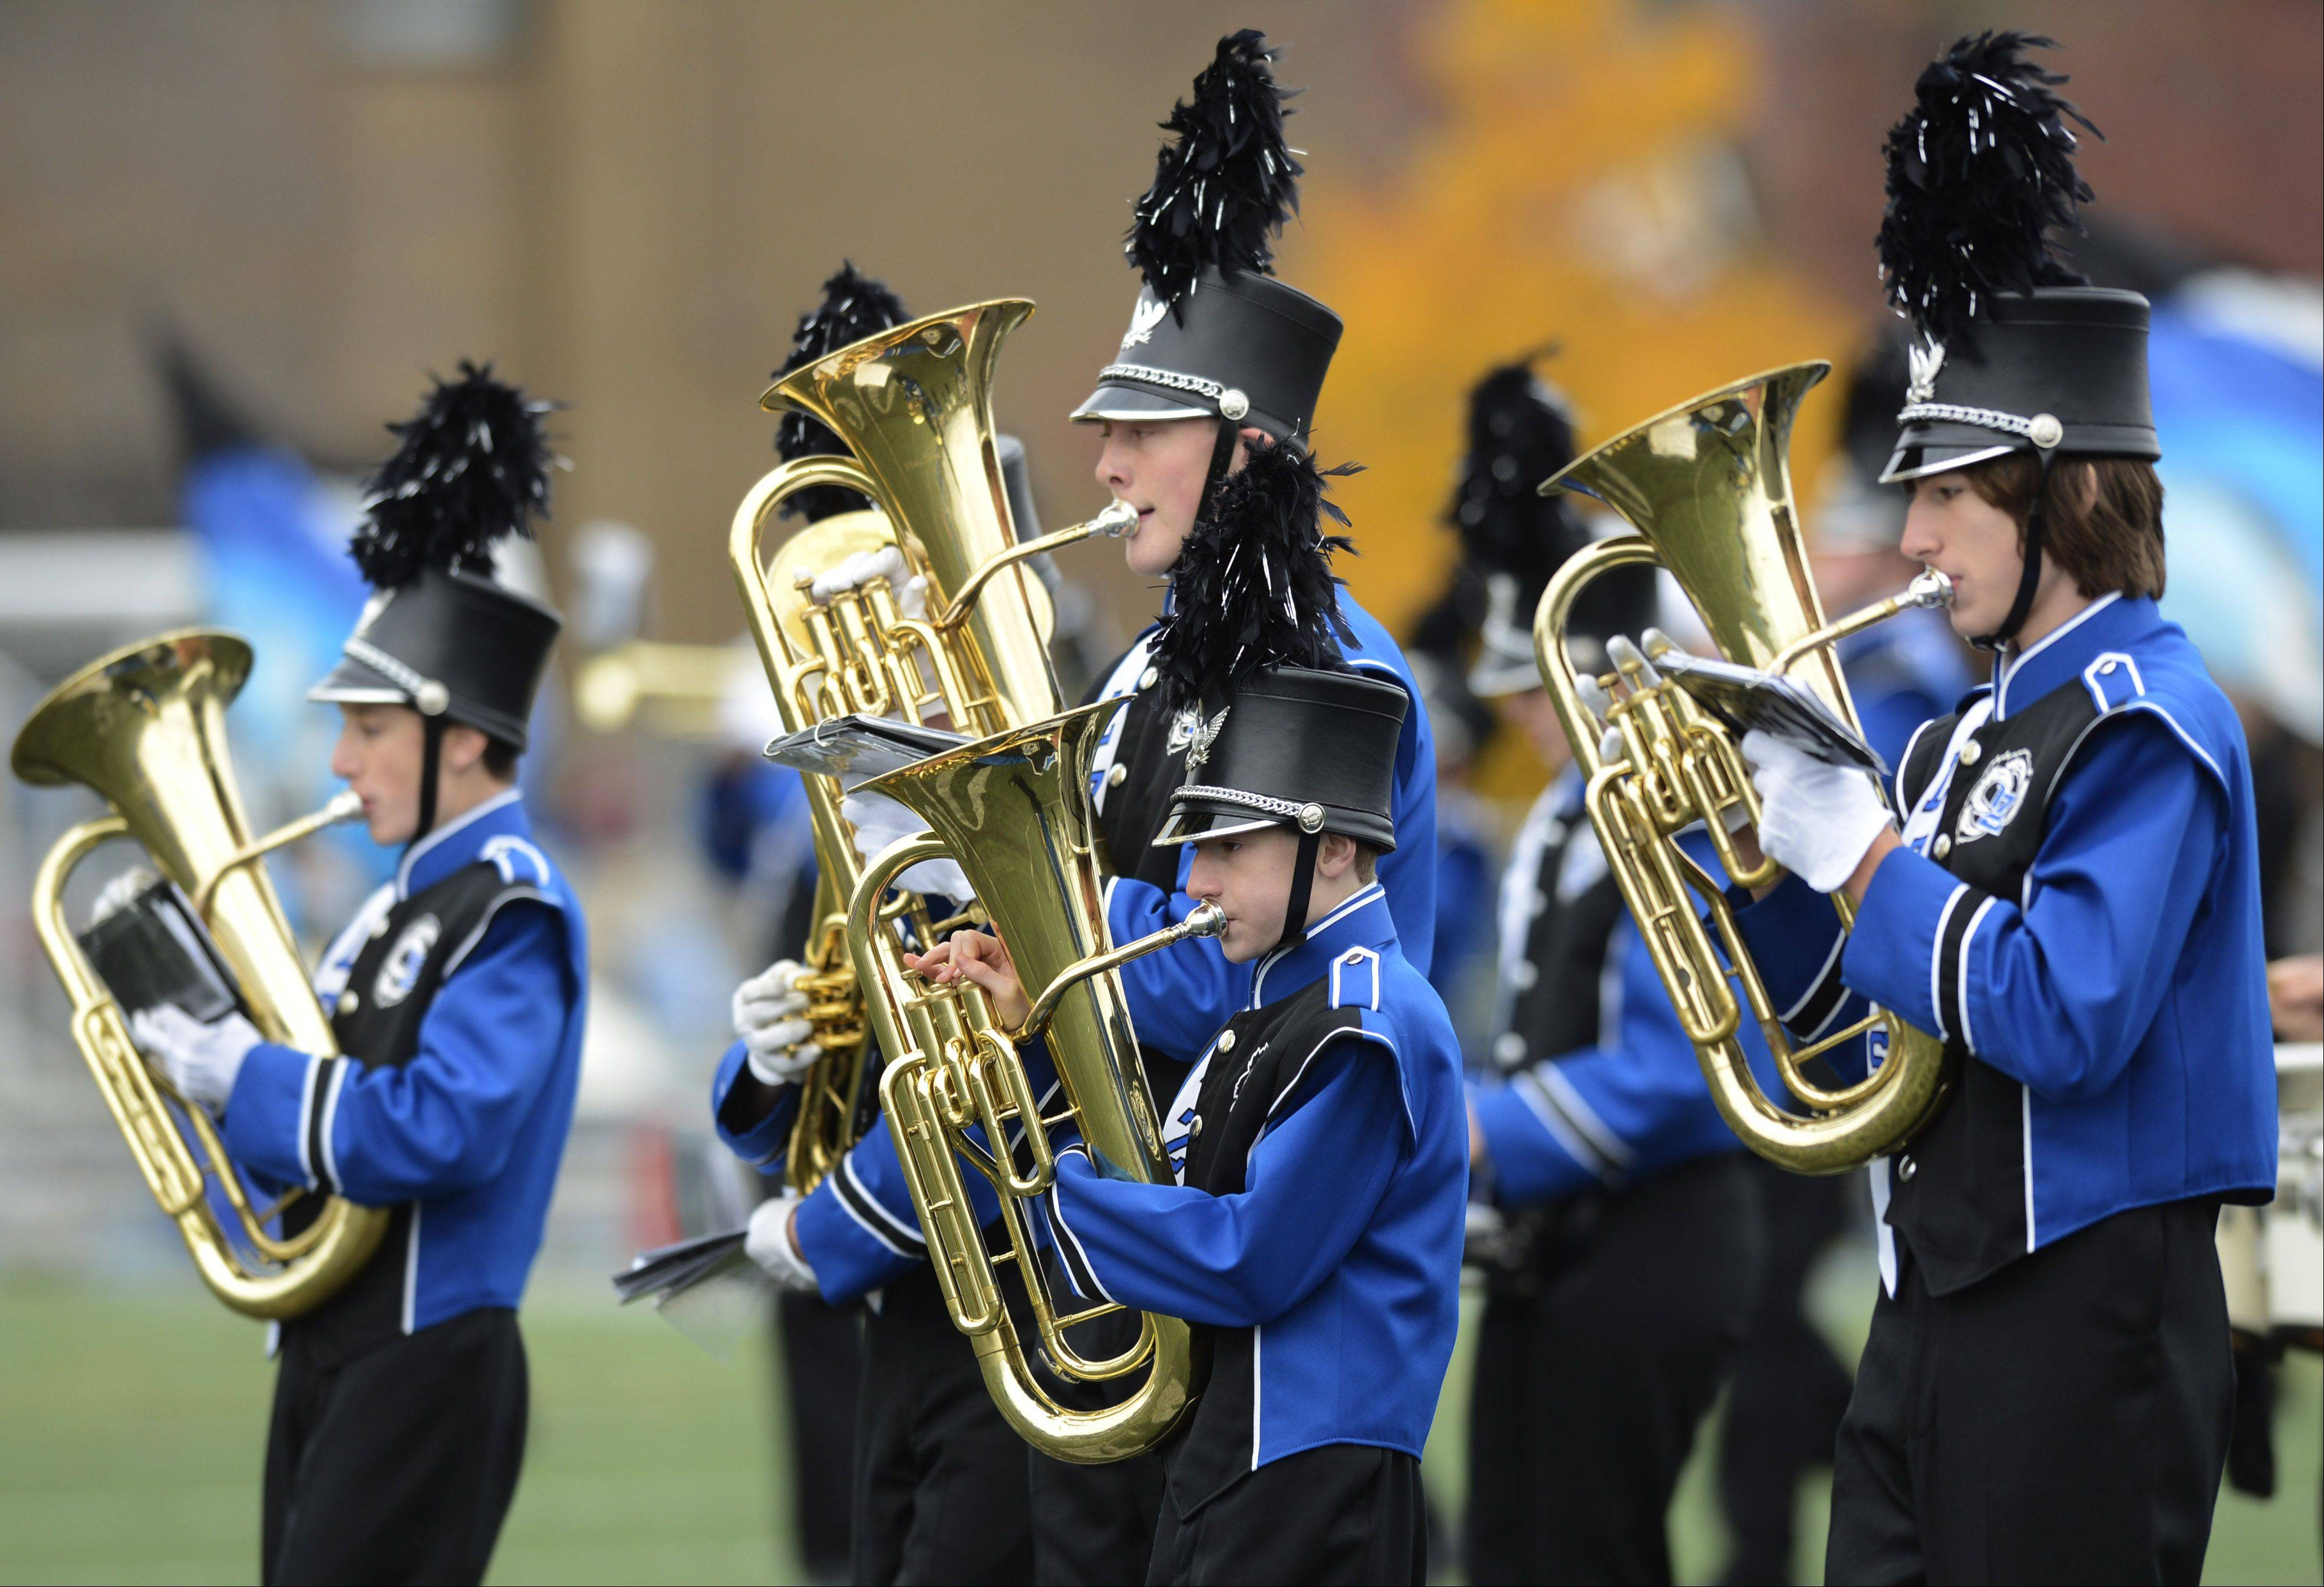 Lake Zurich High School band has big-time gigs coming in Chicago, Madrid